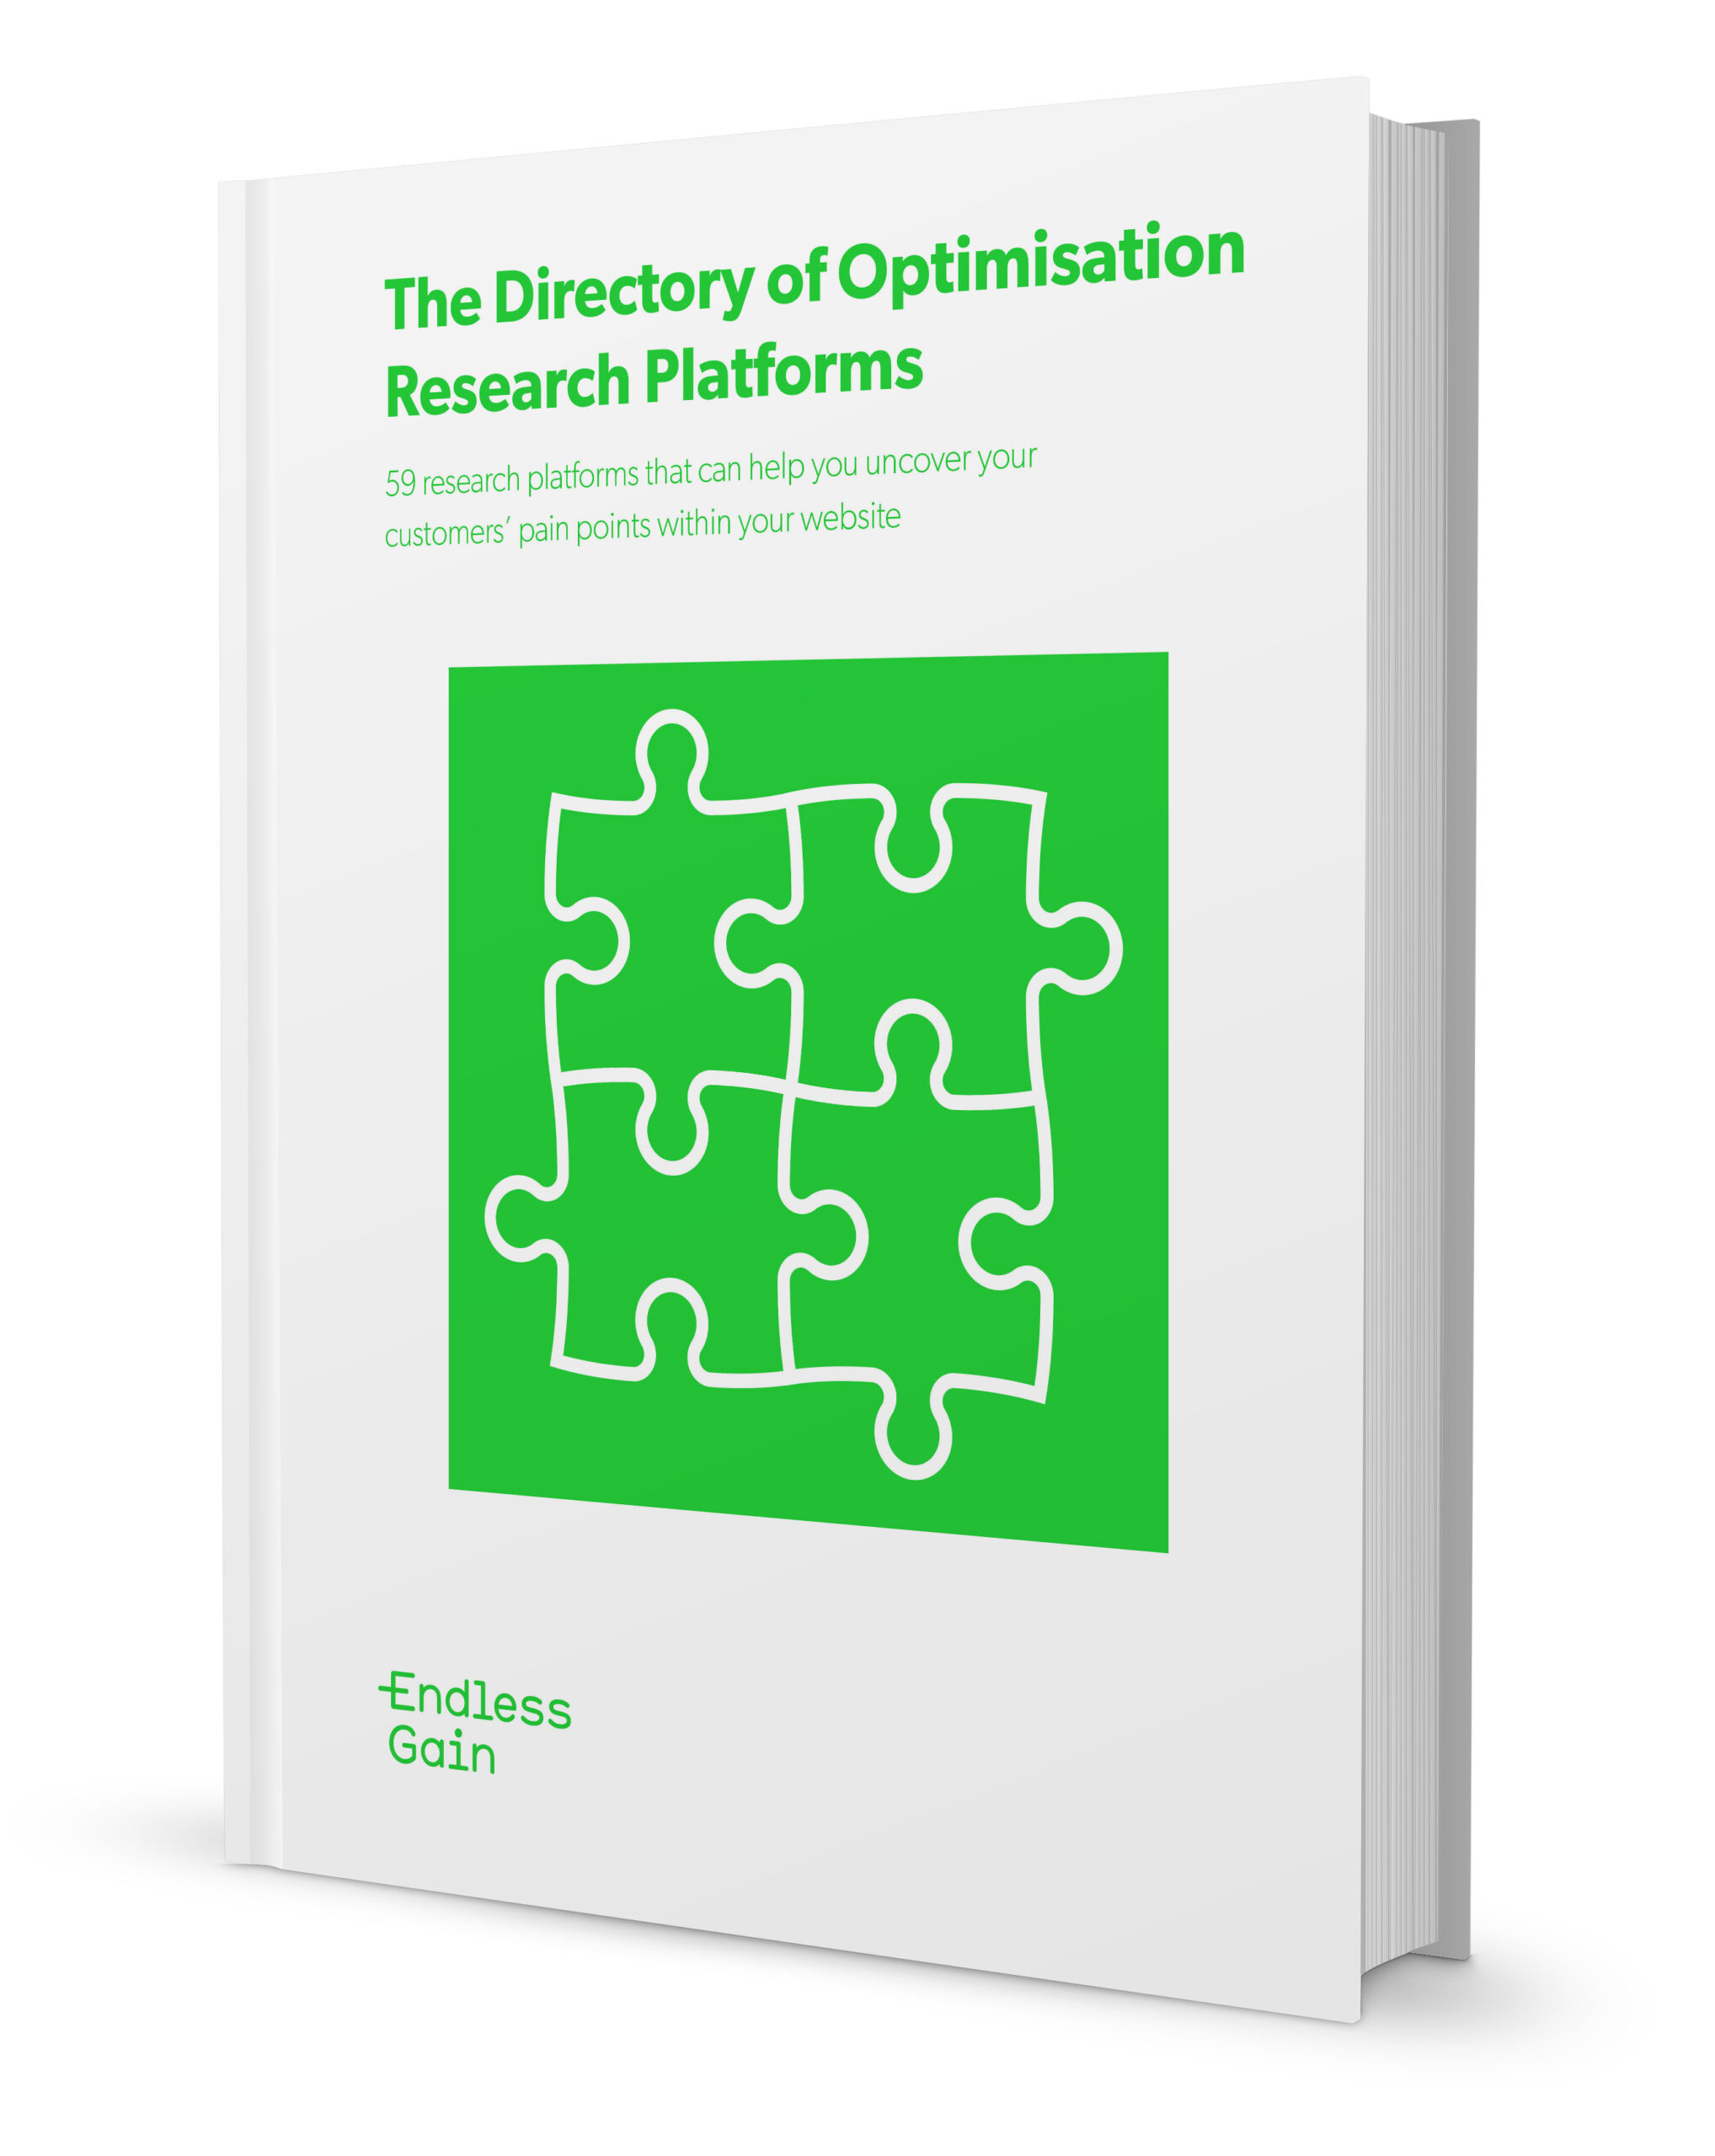 The Directory of Optimisation Research Platforms